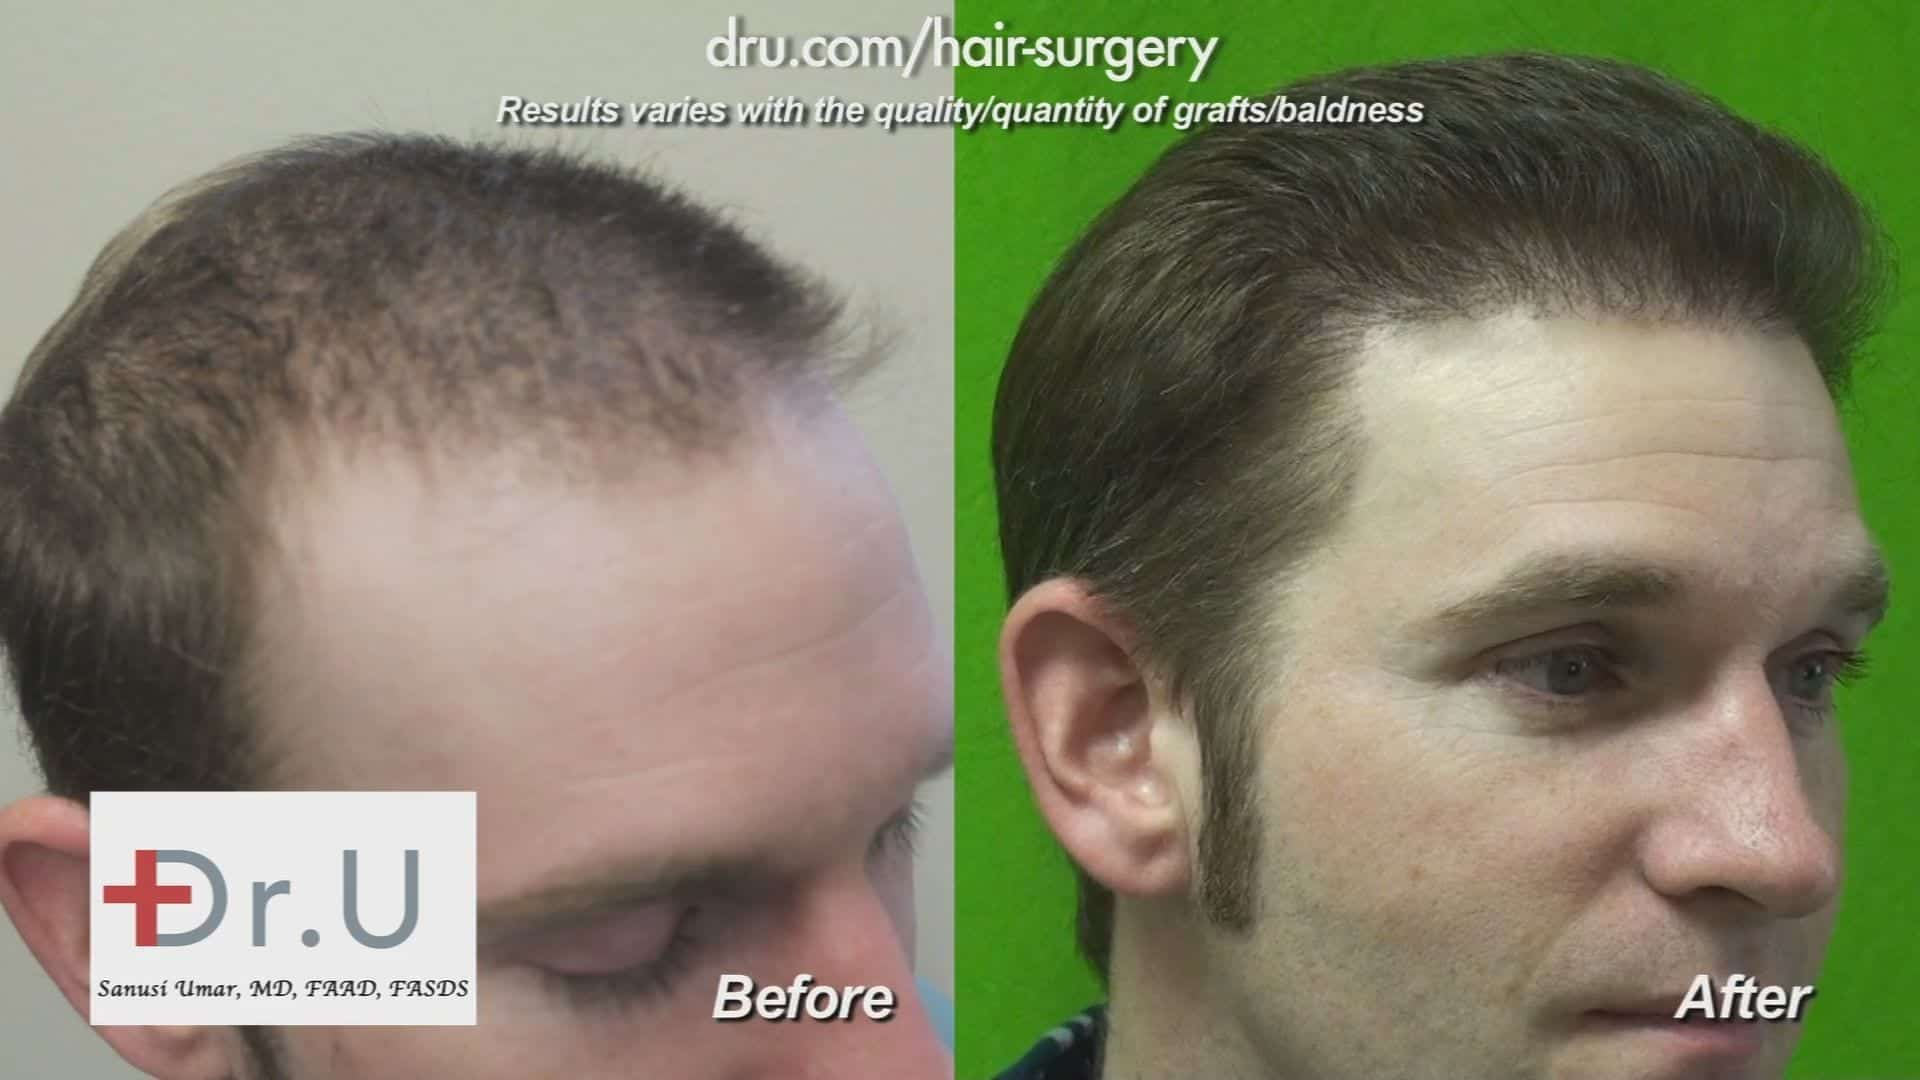 This patient benefited immensely from his FUT (Follicular Unit Transfer) surgery, which is also known as Follicular Unit Extraction, although no one would have guessed that he had a hair transplant *